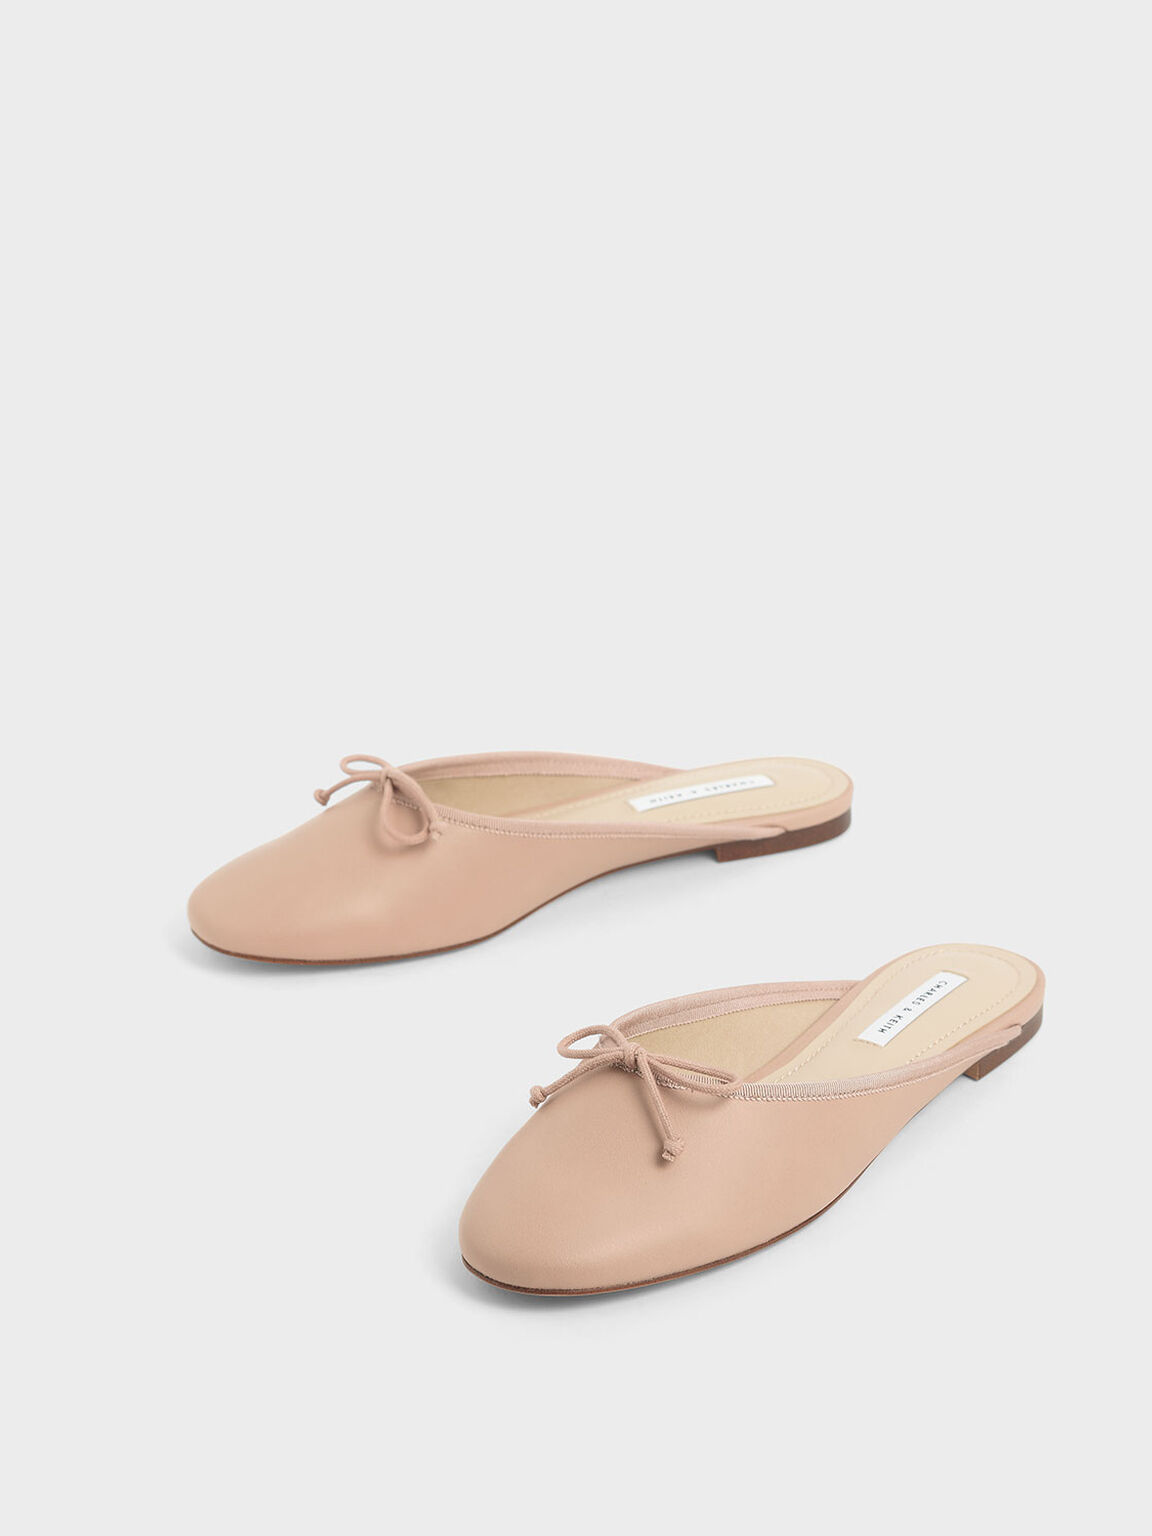 Bow Flat Mules, Nude, hi-res